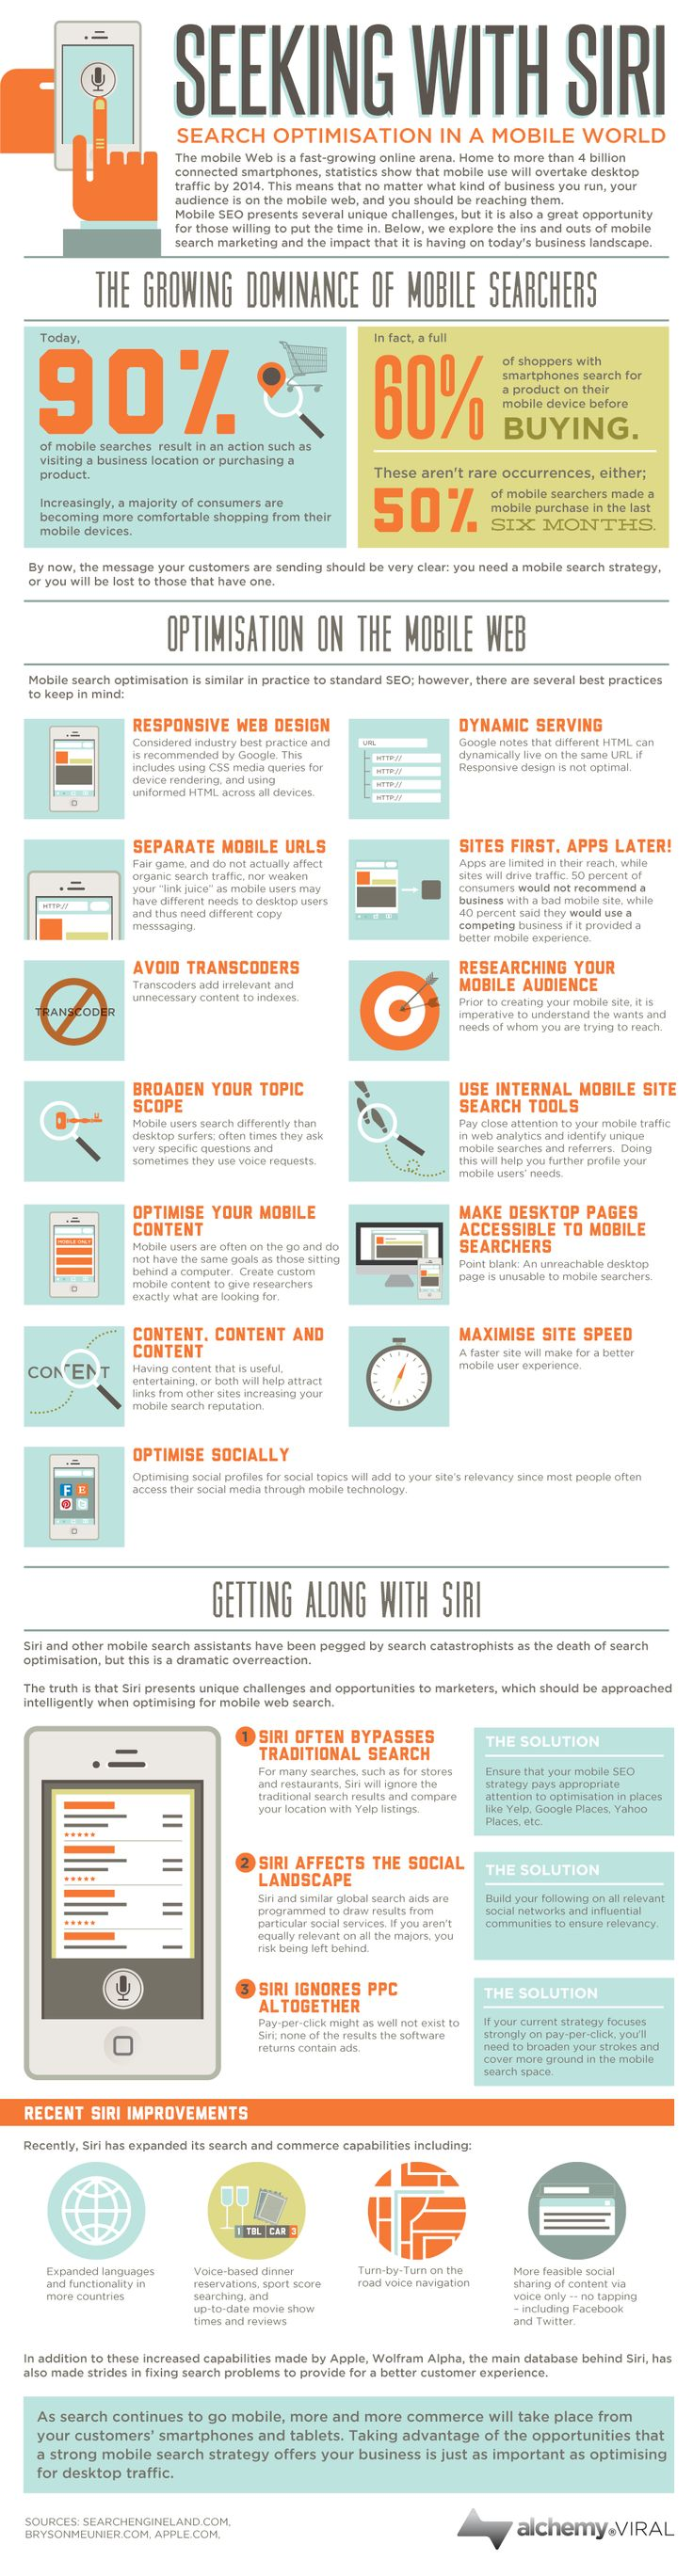 Infographic: SEO For Siri & The Mobile Search World #seo #mobile - Via   Search Engine Land